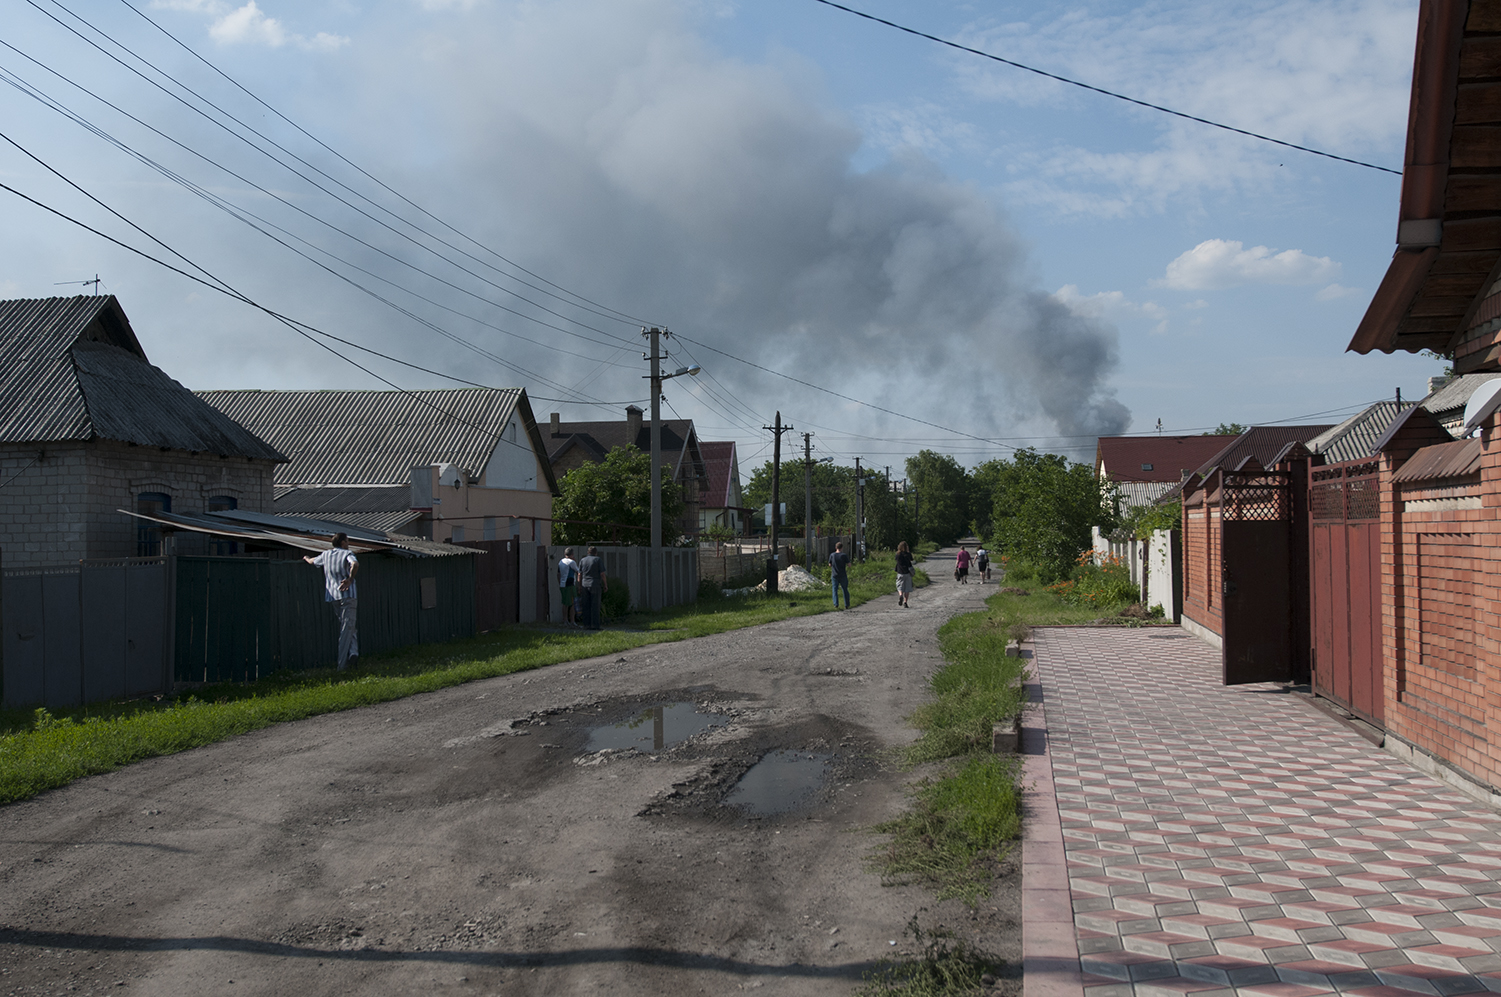 People looking at the smoke coming from the airport area, thisneighborhood is located between Donetsk's train station and its airport.